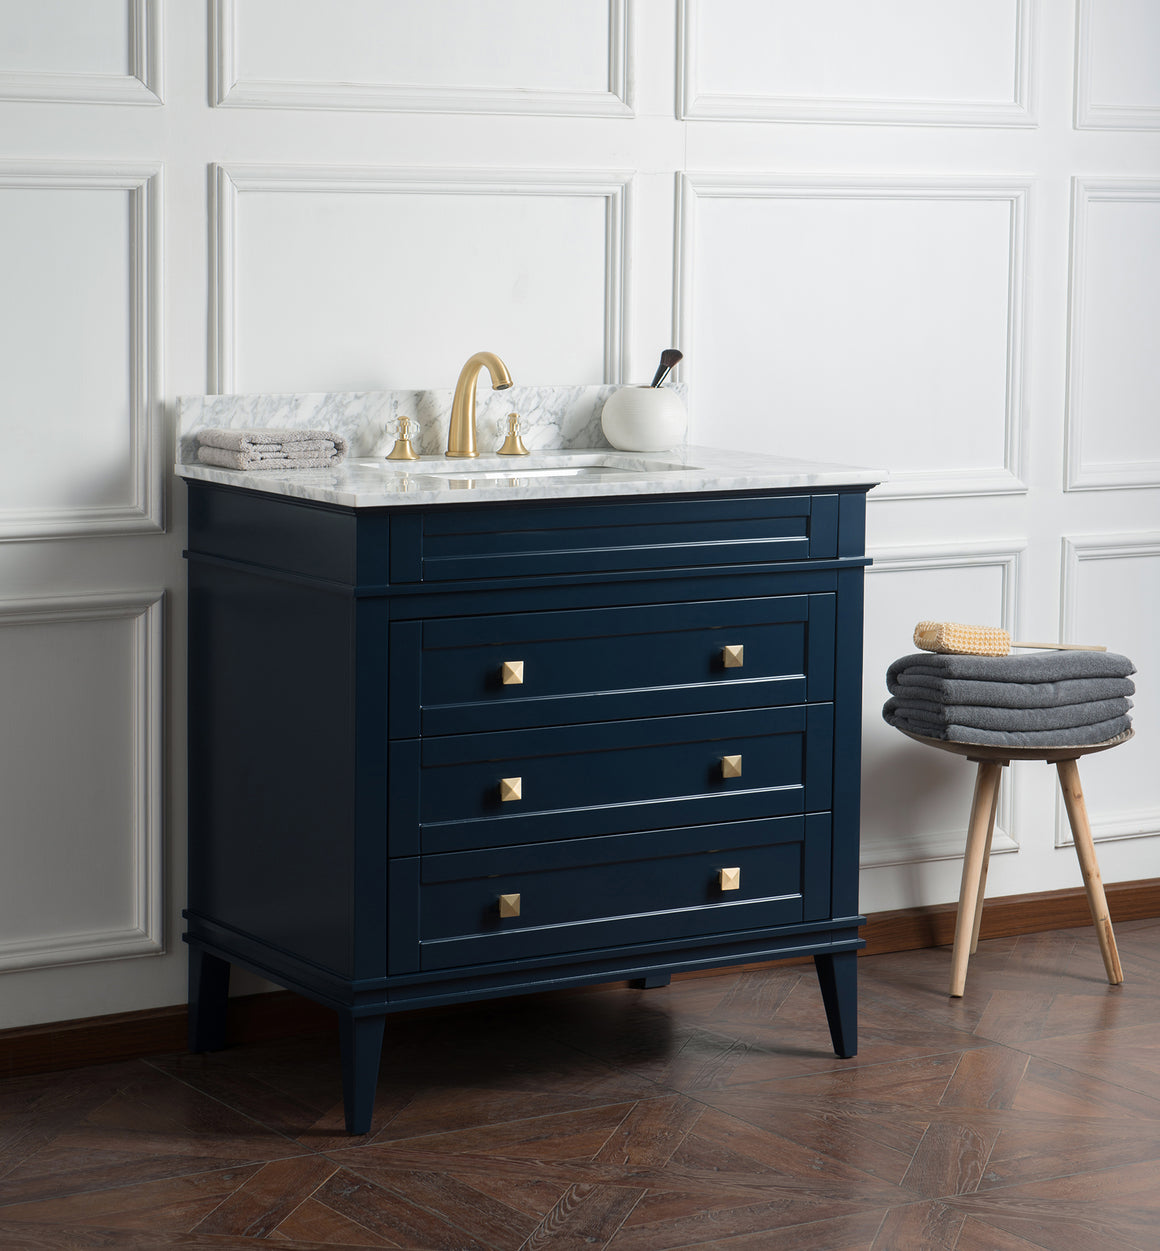 "Alex 36"" Single Bathroom Vanity Set in Blue"